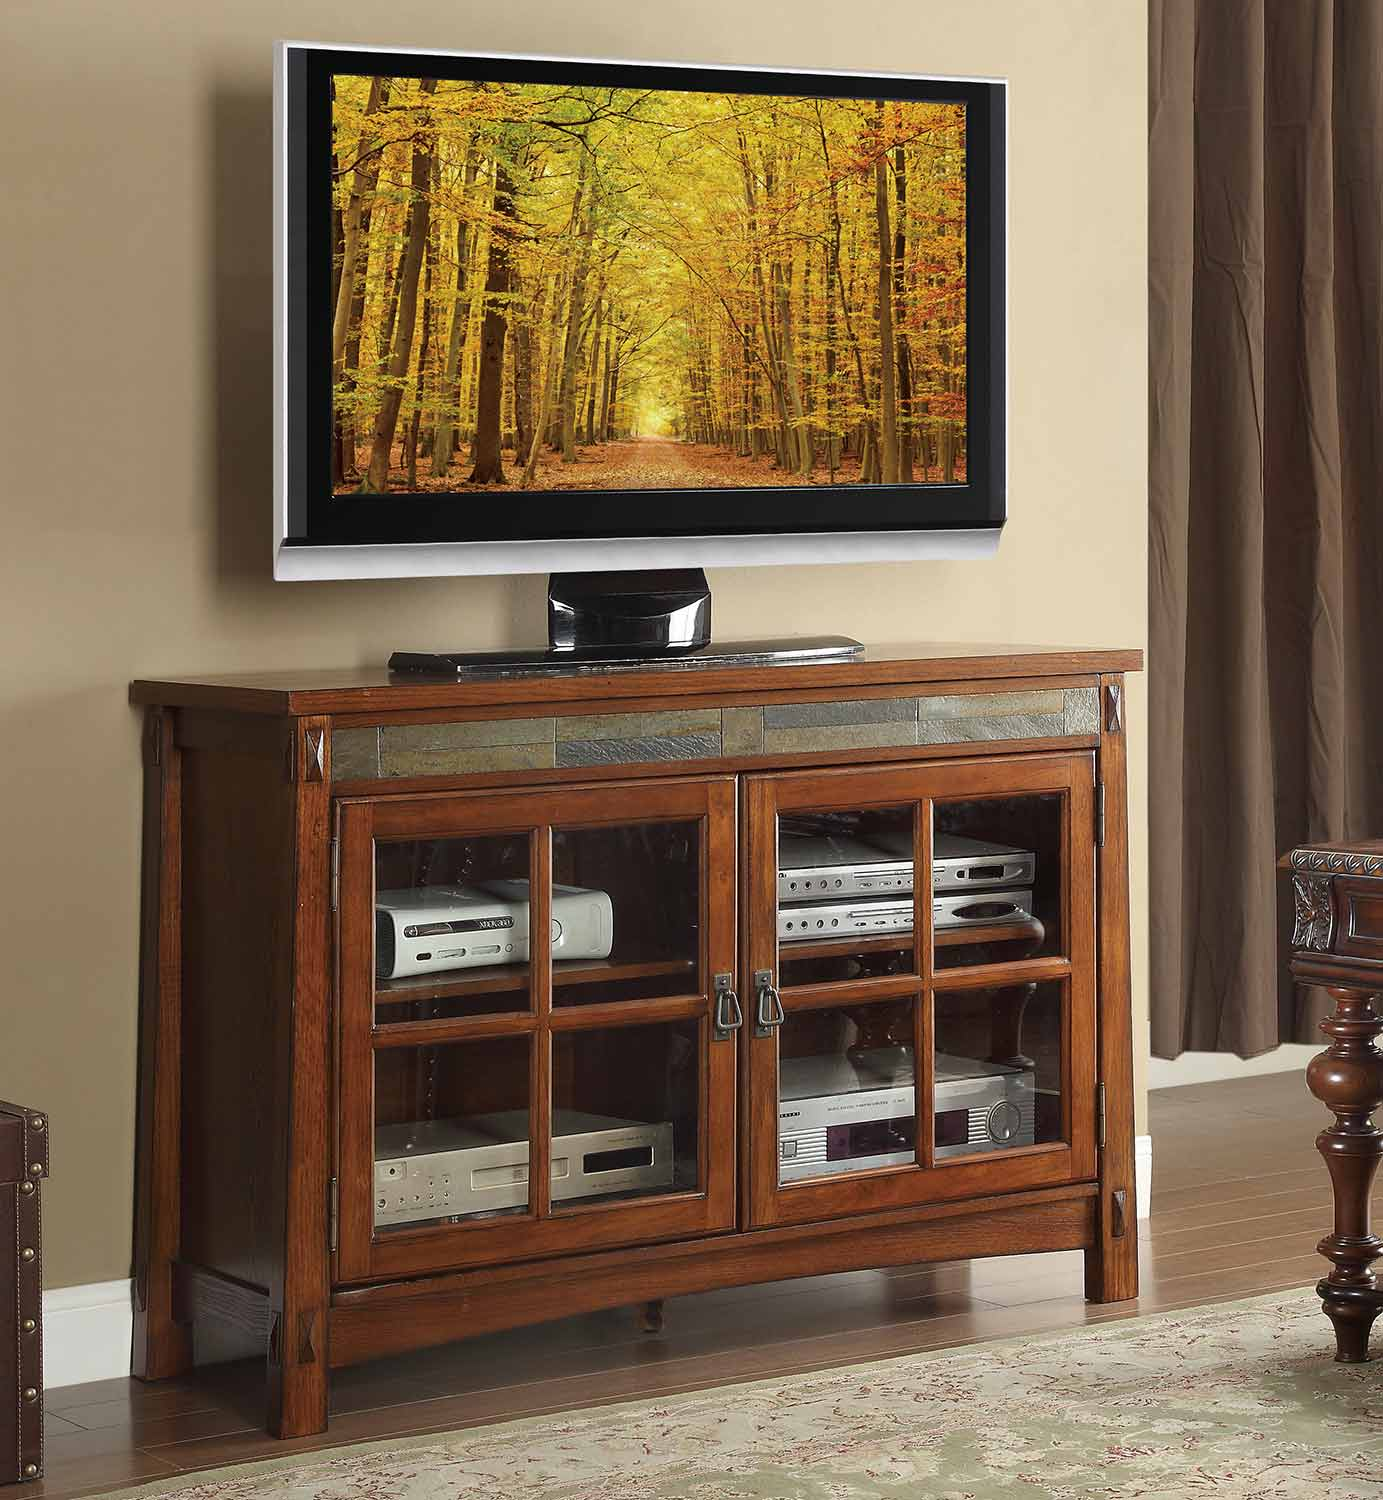 Homelegance Falls TV Stand - Brown Cherry